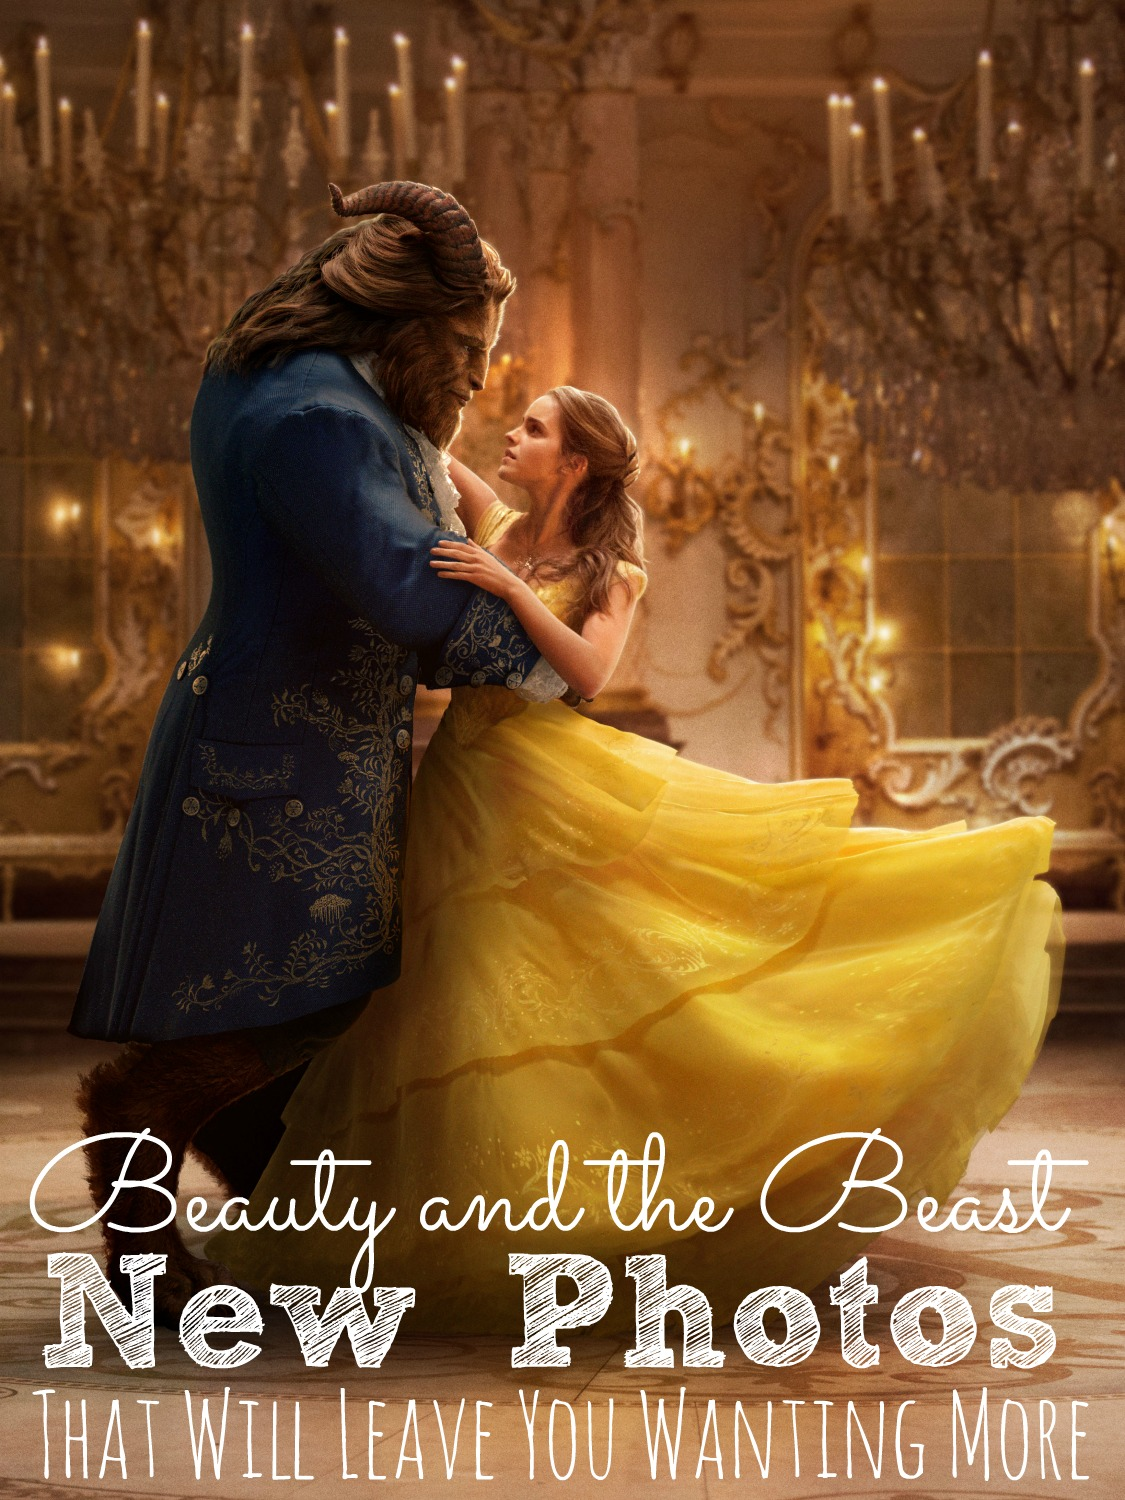 Beauty and The Beast Photos That Will Leave You Wanting More